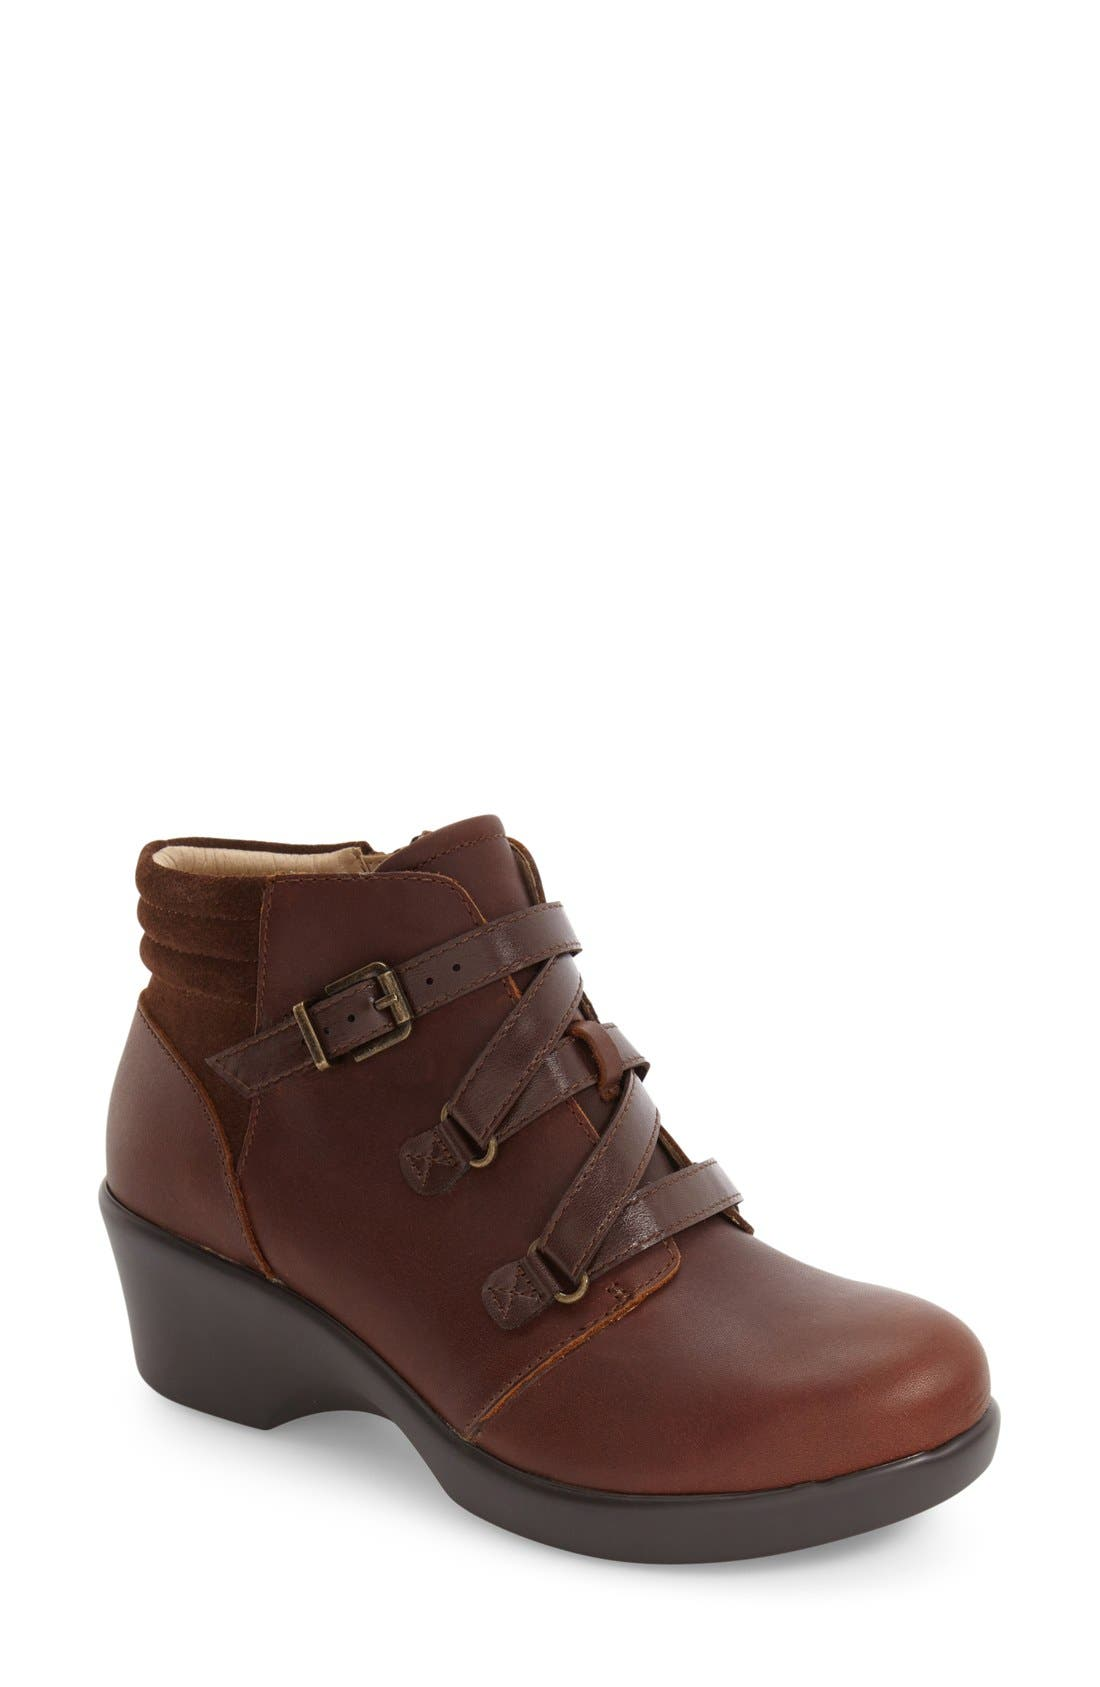 Indi Demi Wedge Bootie,                             Main thumbnail 6, color,